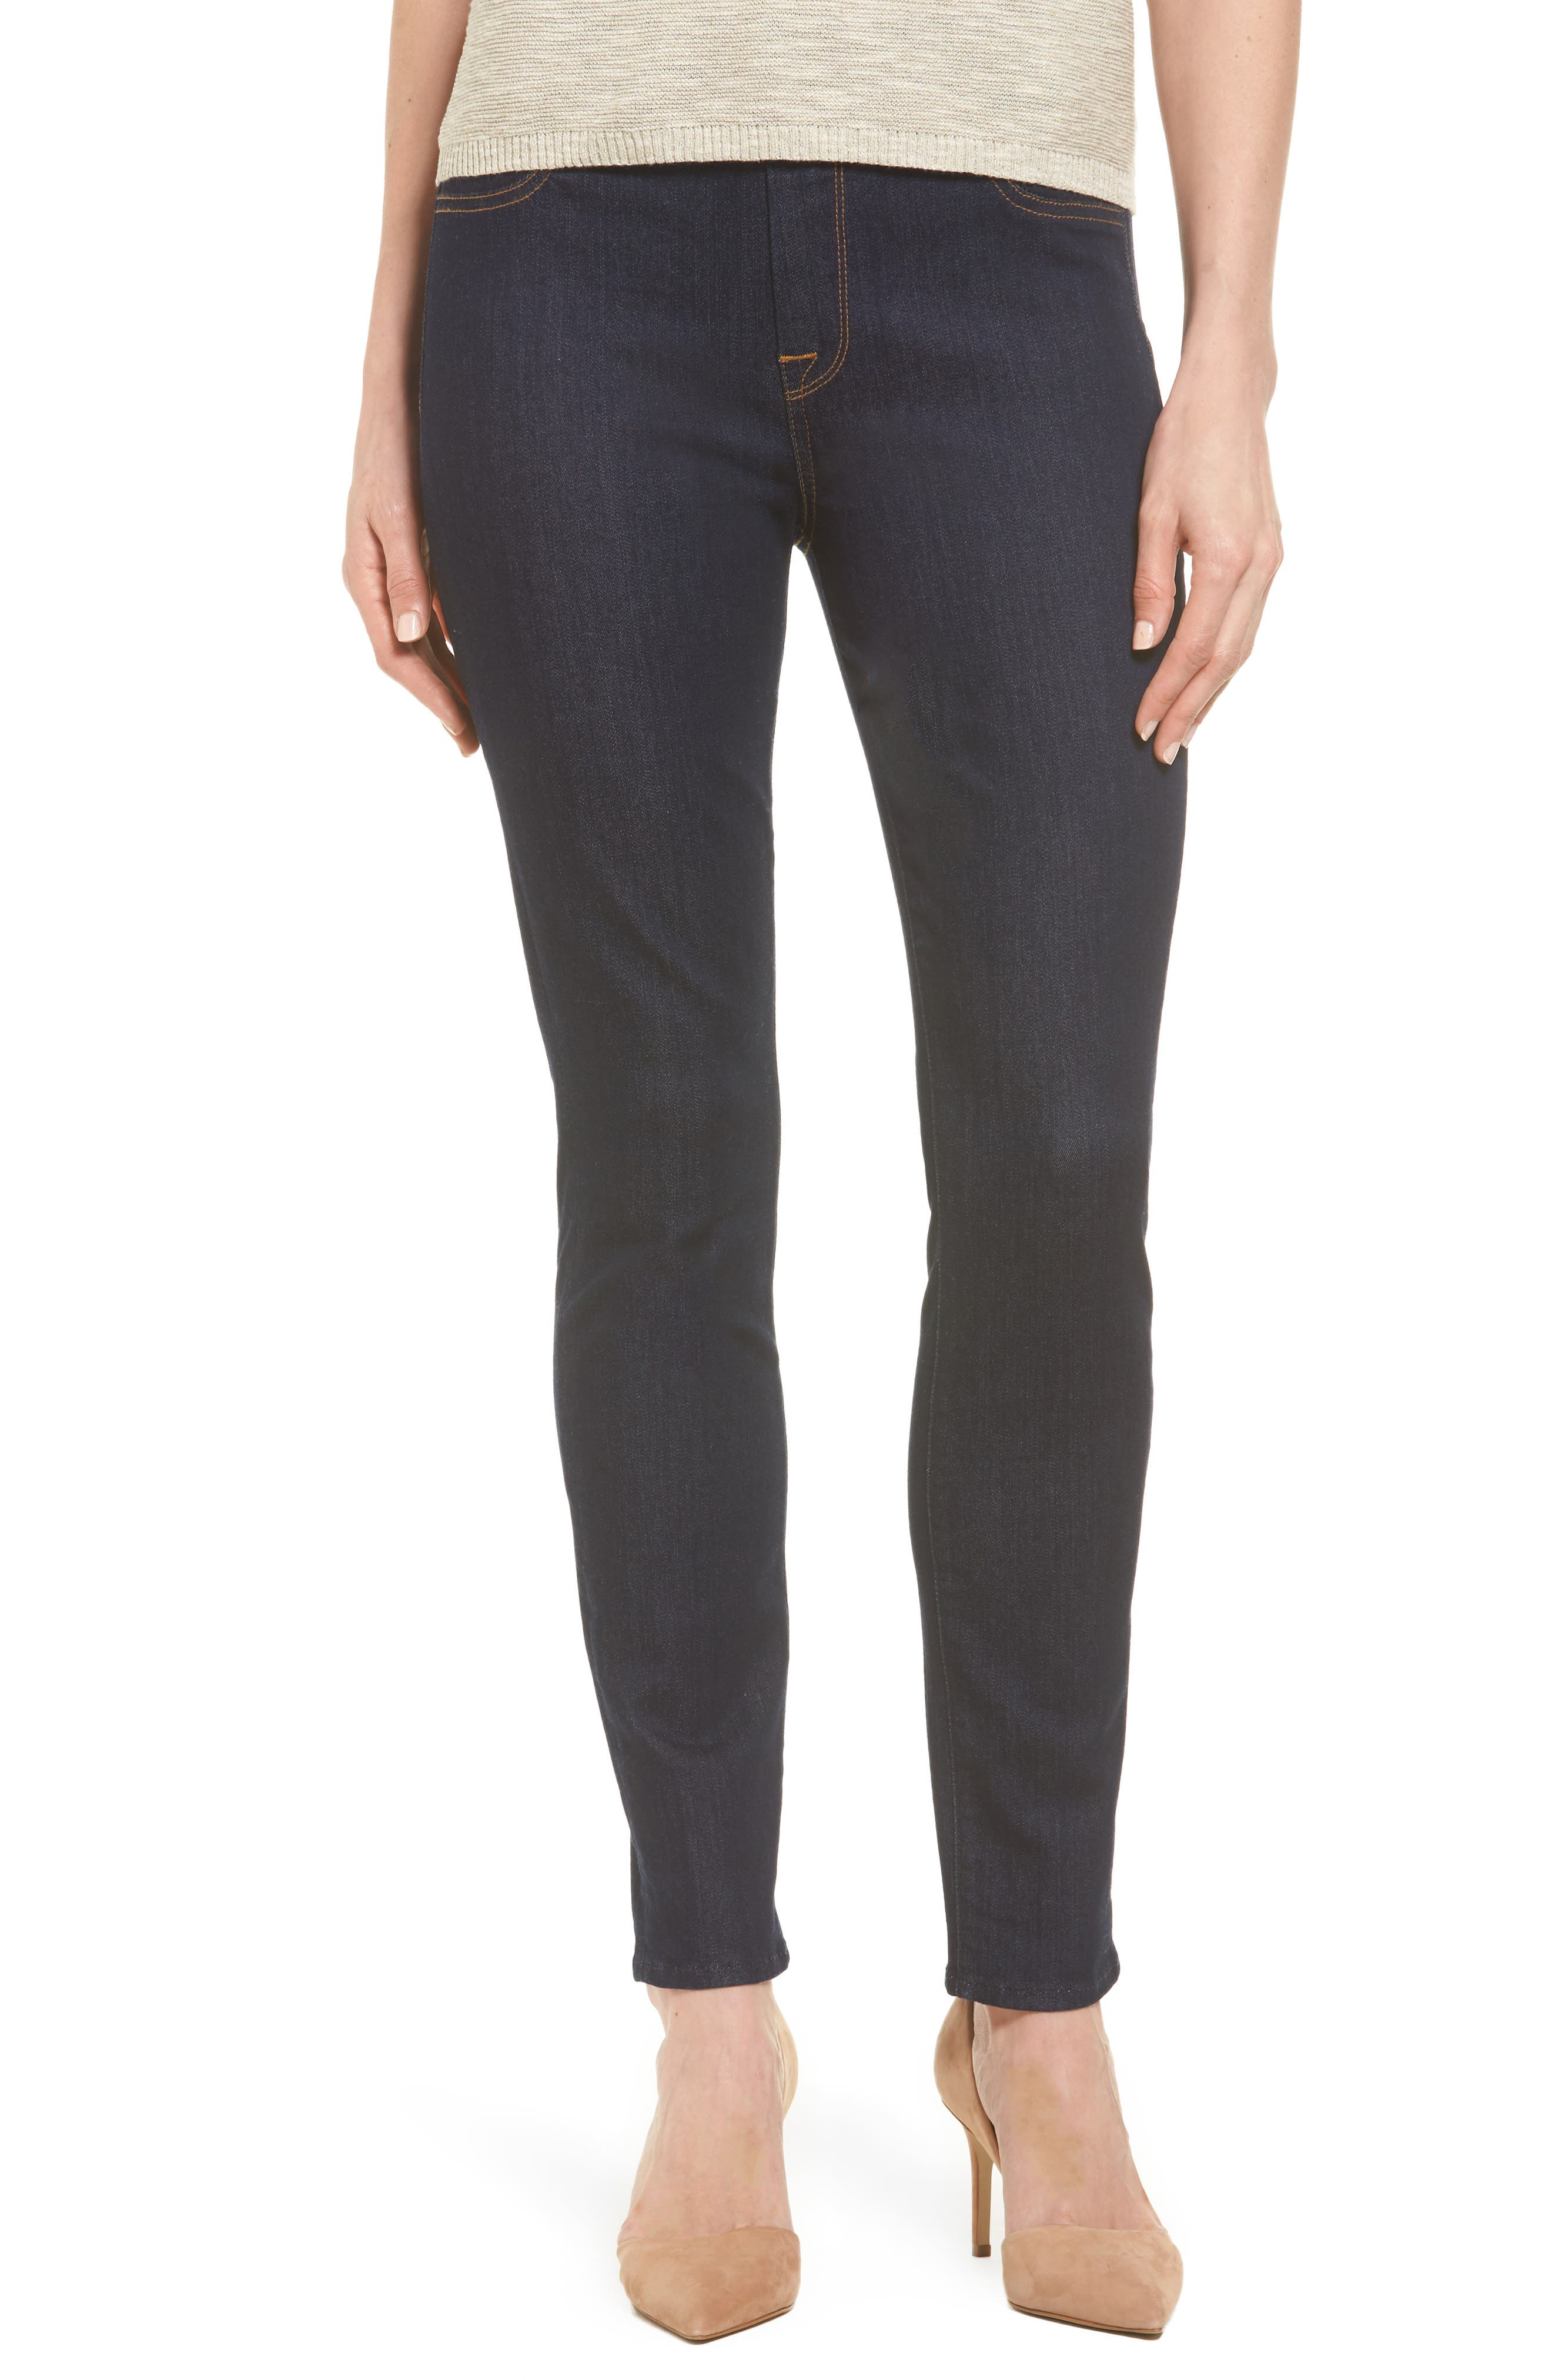 Main Image - Jen7 Comfort Stretch Denim Skinny Jeans (Riche Touch Rinsed Night)